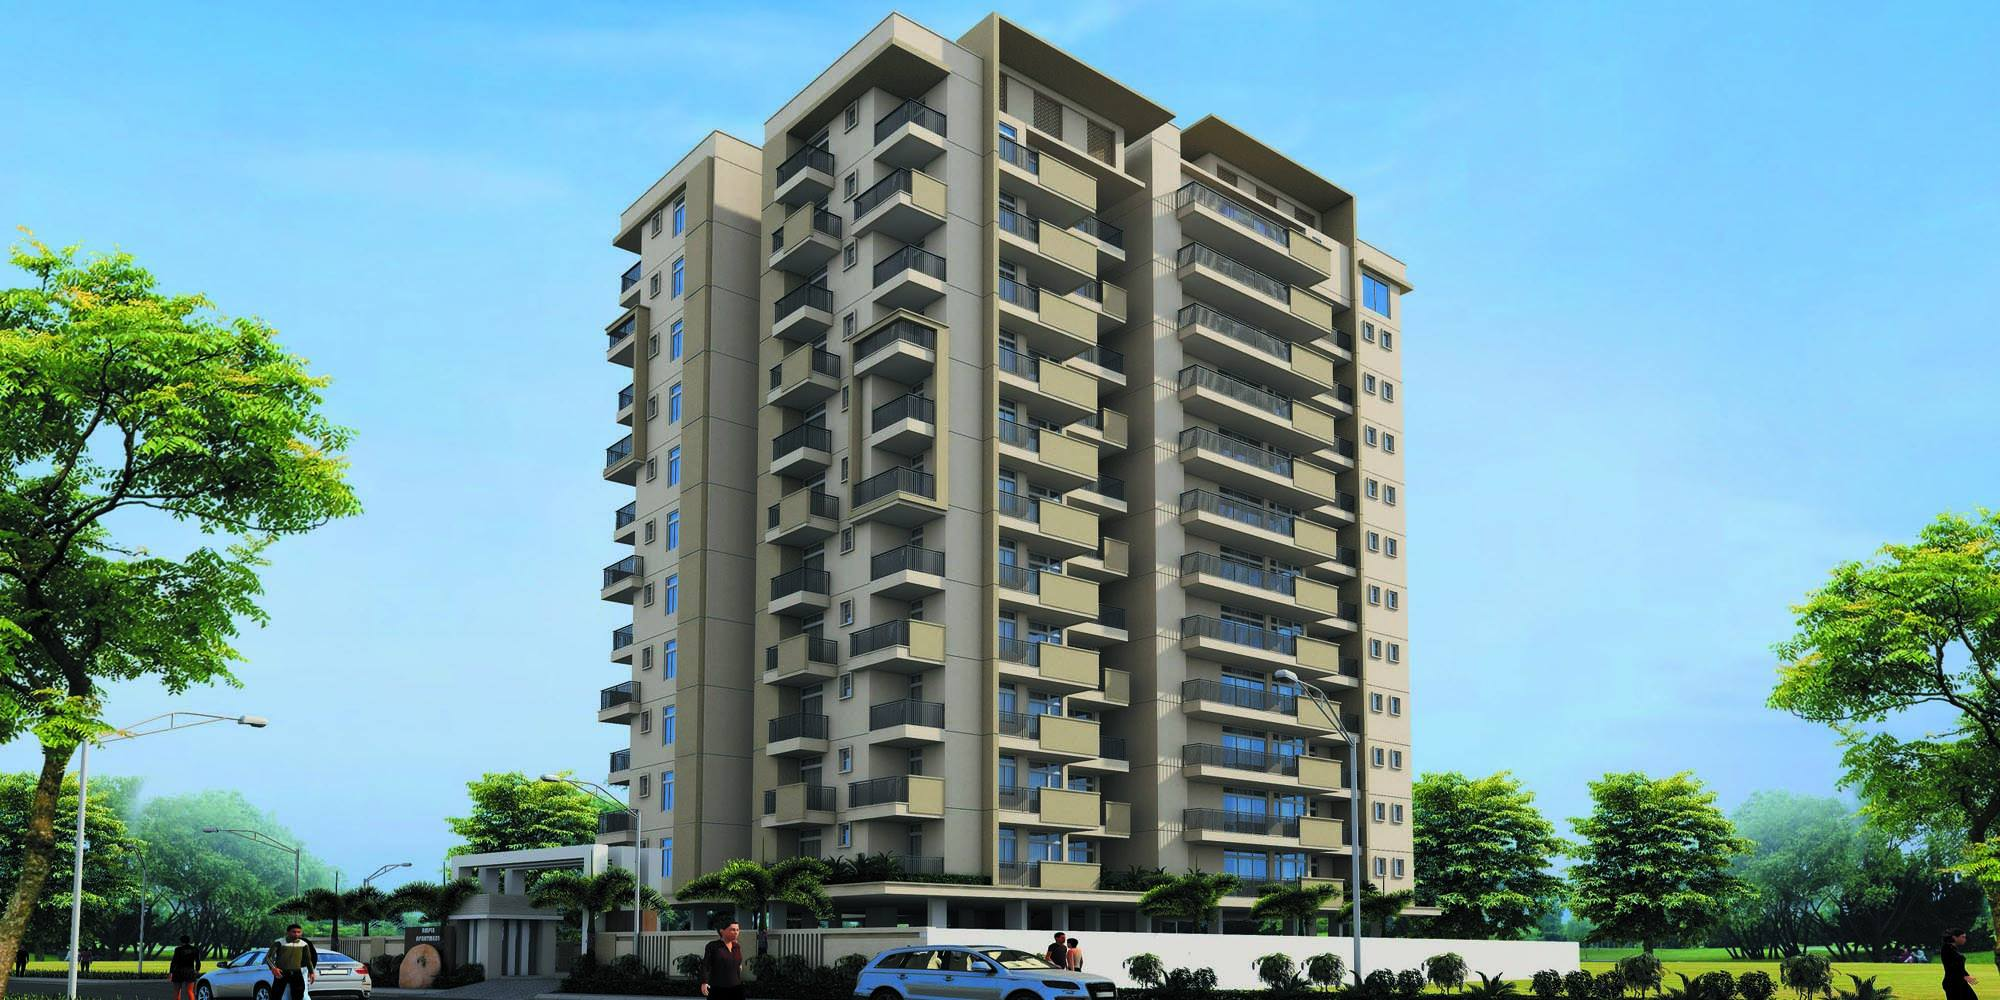 Flats for sale in muhana road jaipur